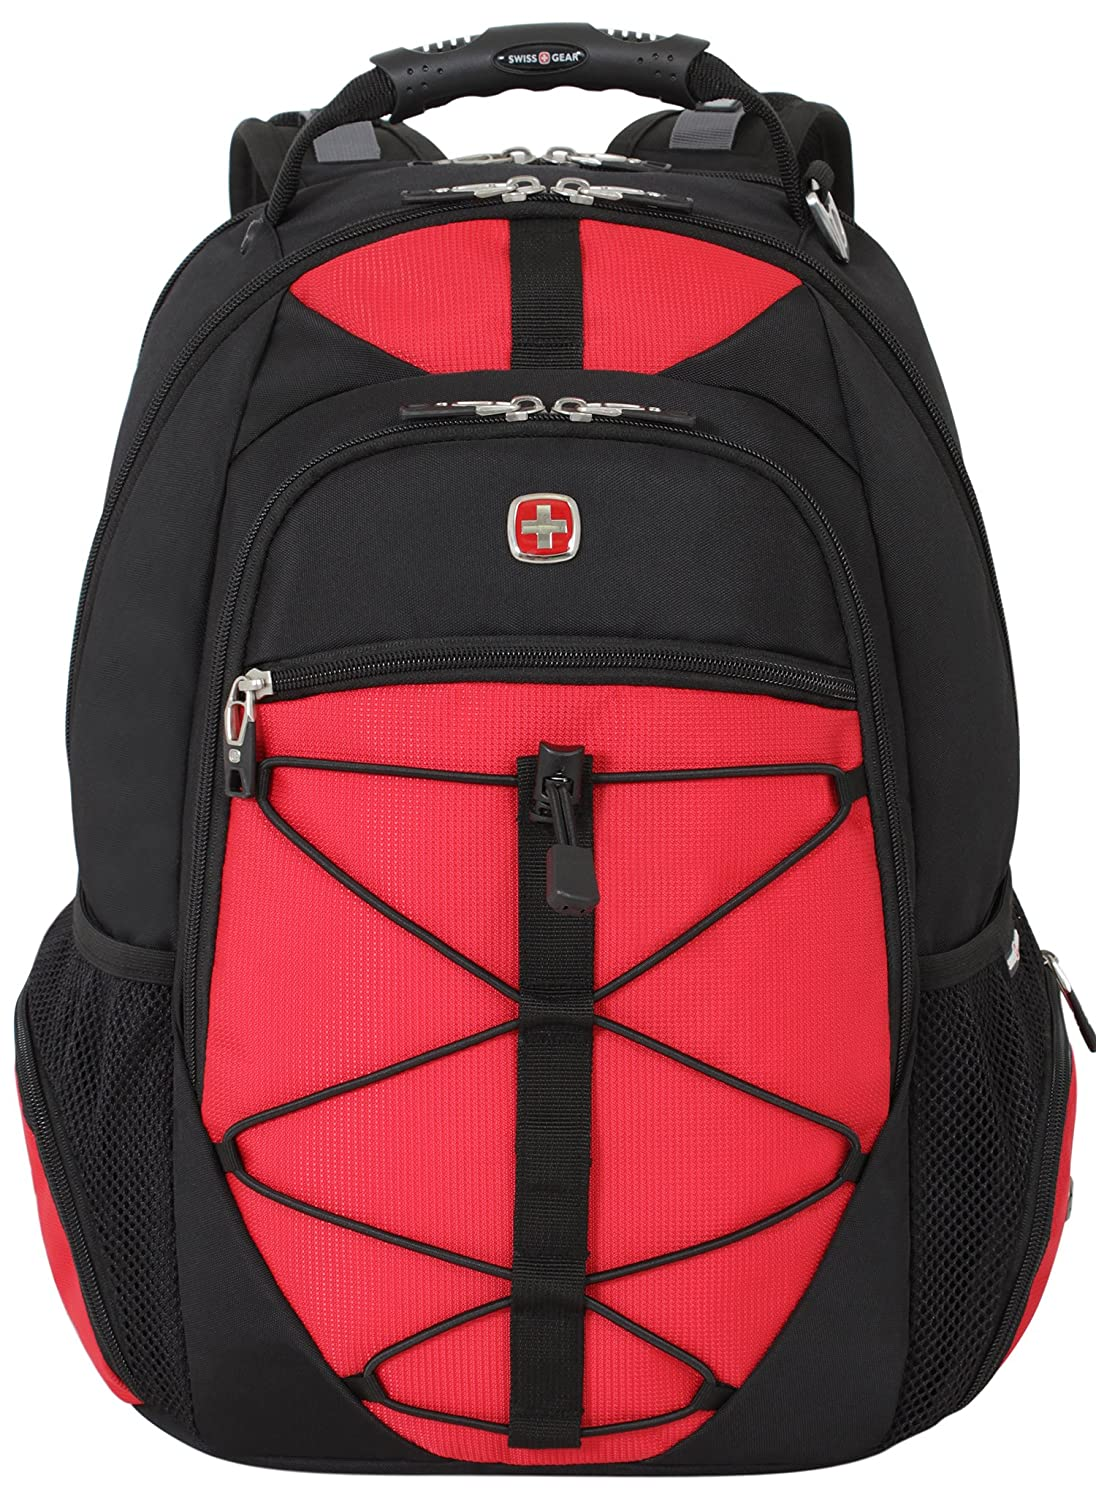 SwissGear TSA Friendly Backpack, Black/Red (6799201410)